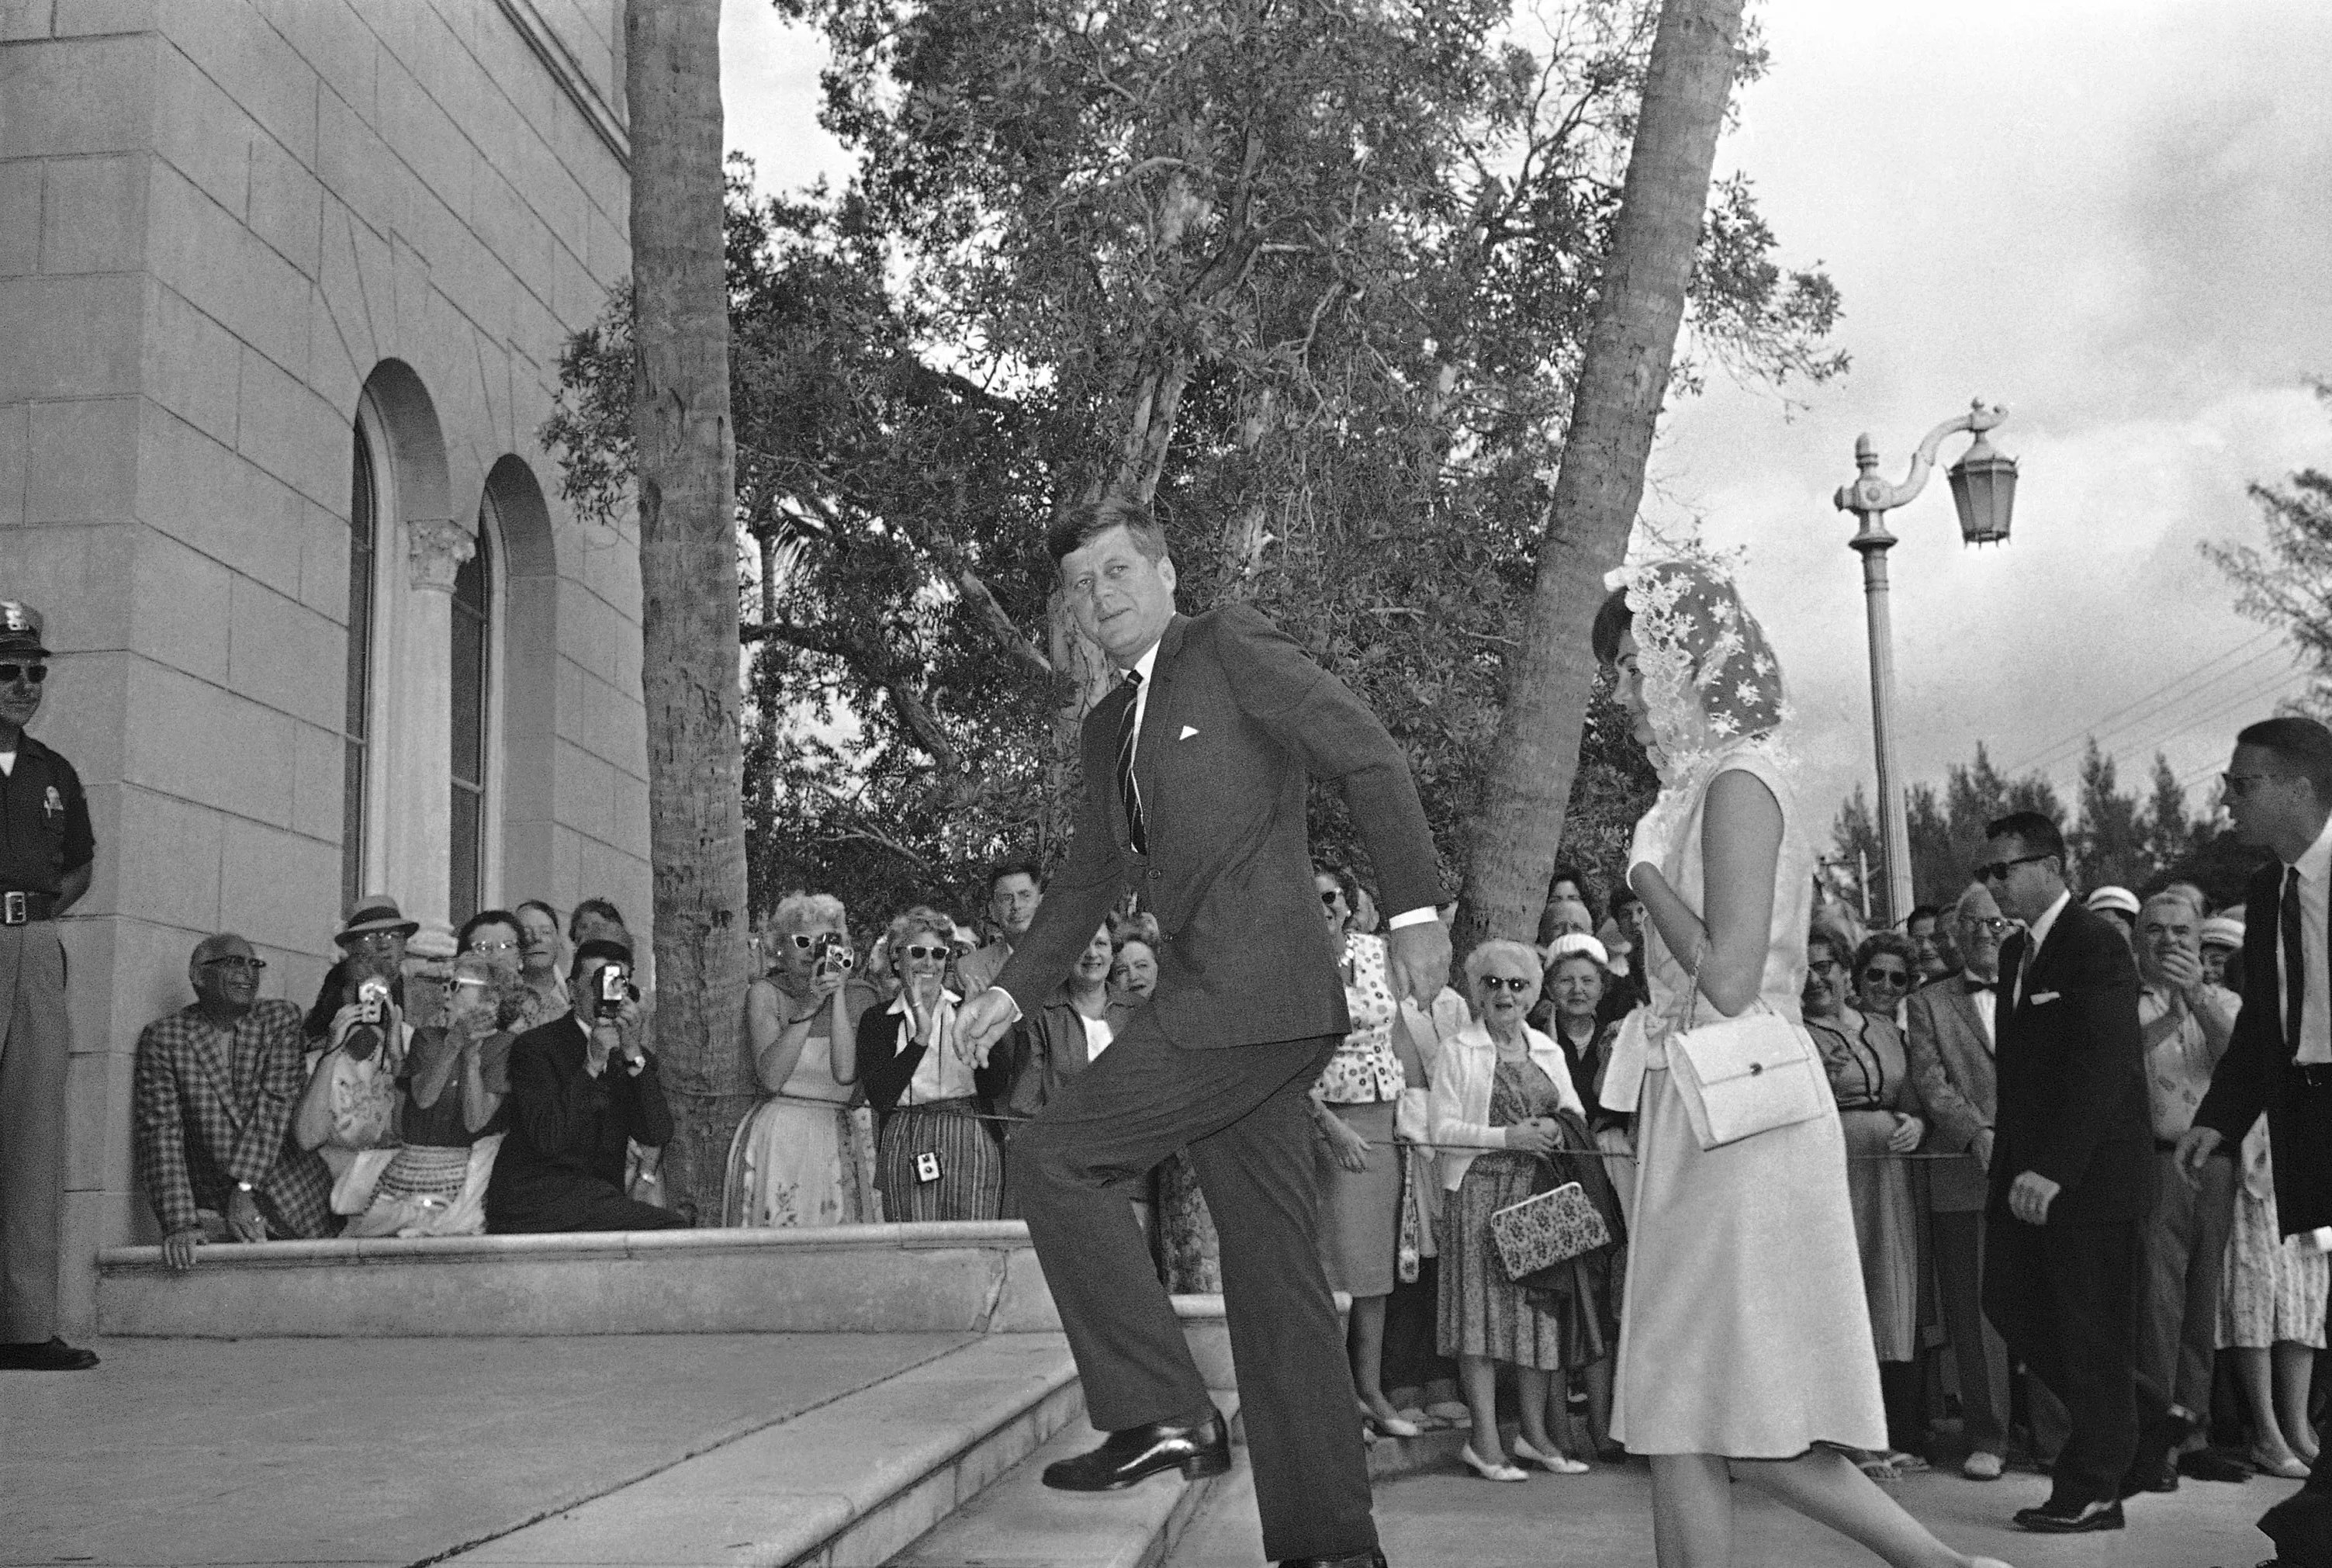 President John F. Kennedy and Jacqueline Kennedy attended mass at St. Edwards Roman Catholic Church on Jan. 28, 1962 in Palm Beach, Florida.